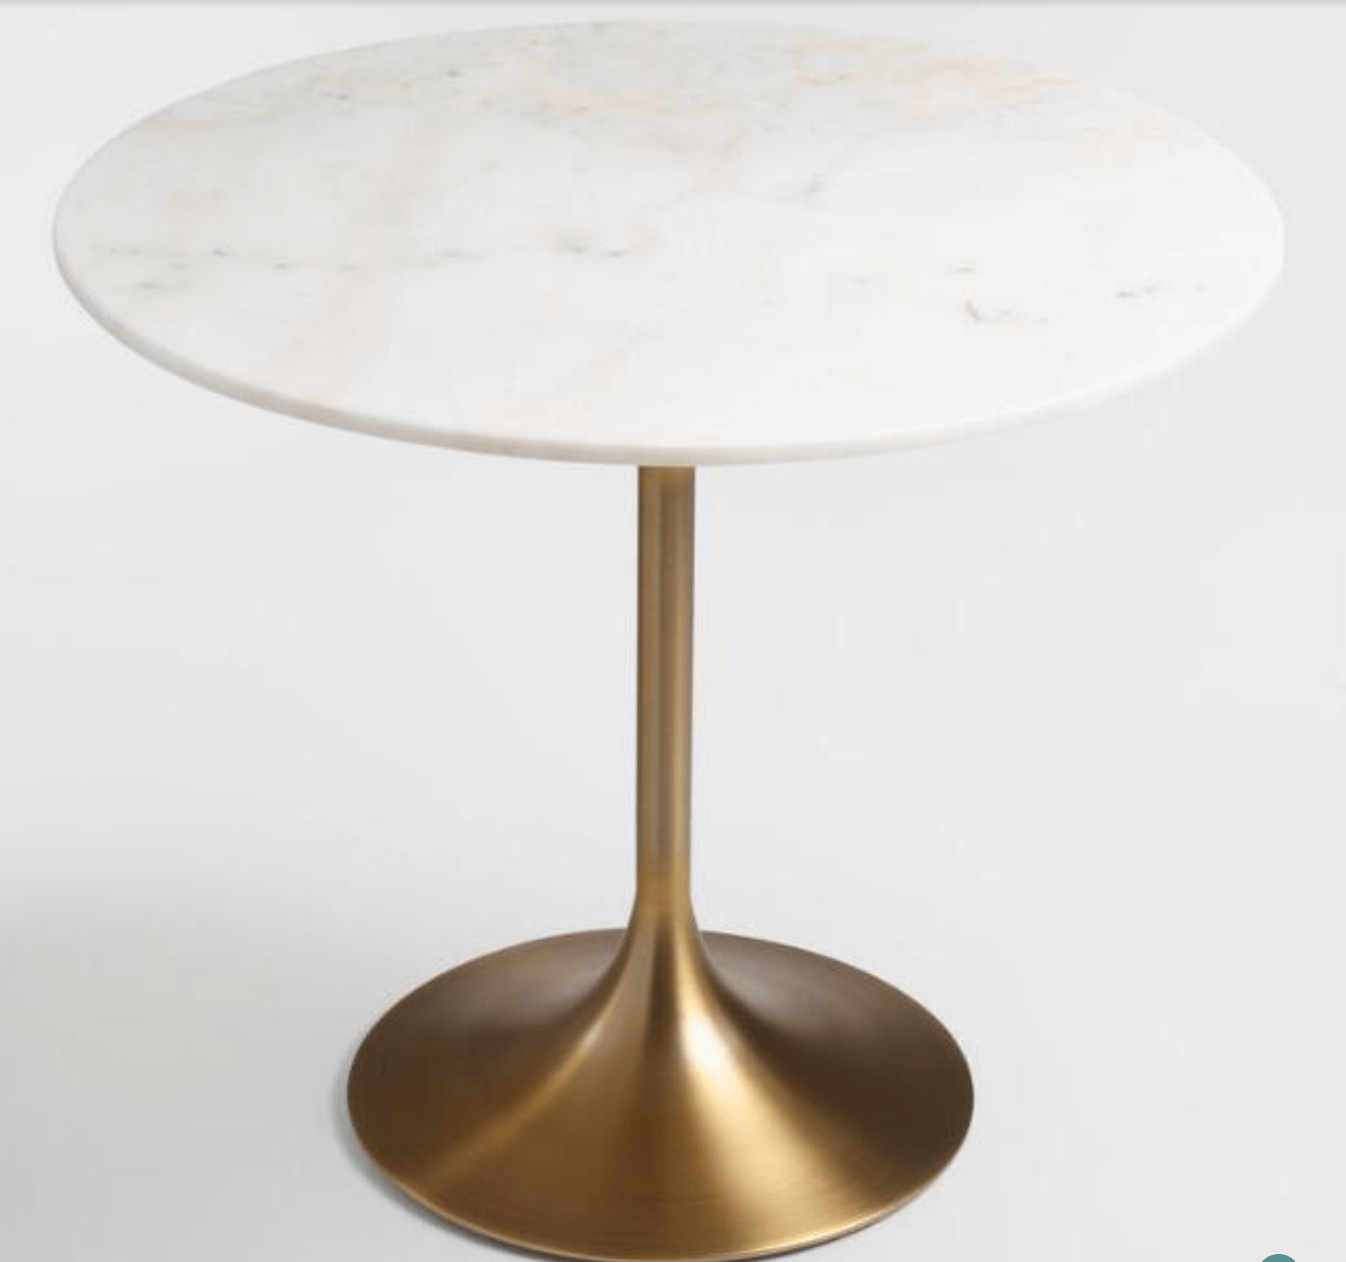 cost-plus-gold-and-marble-tulip-dining-table